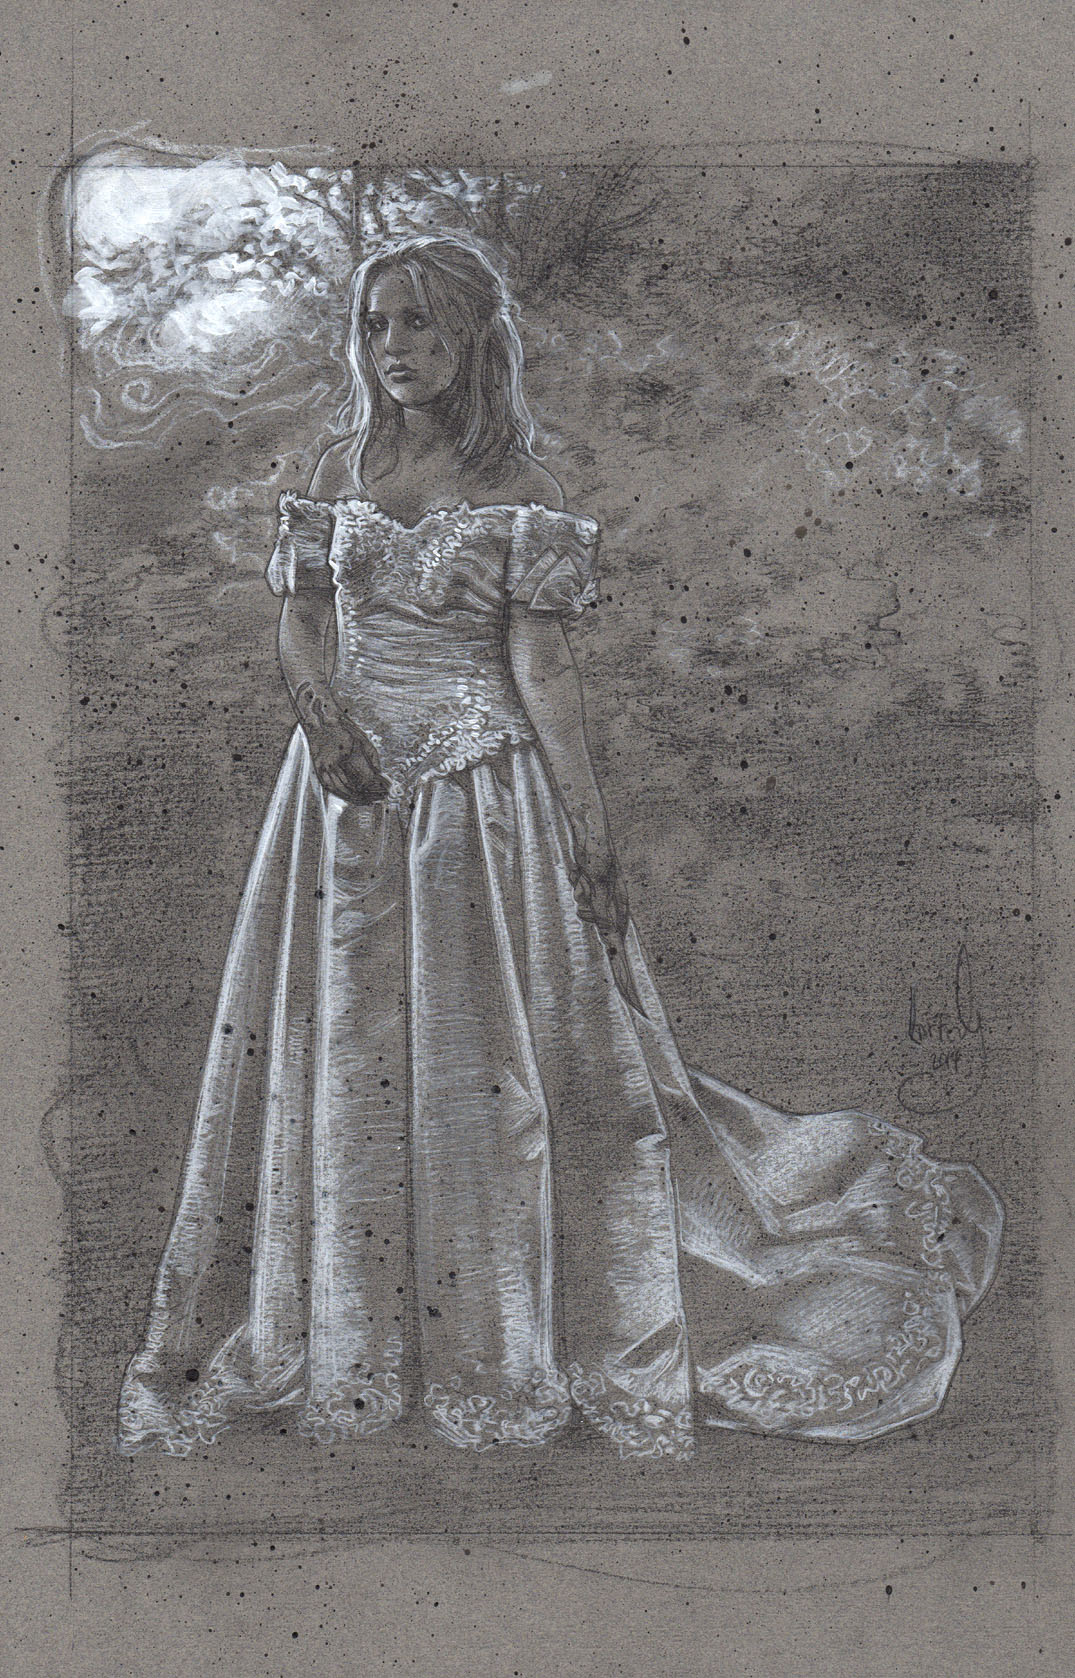 Bride with Knife, Artwork is Copyright © 2014 Jeff Lafferty